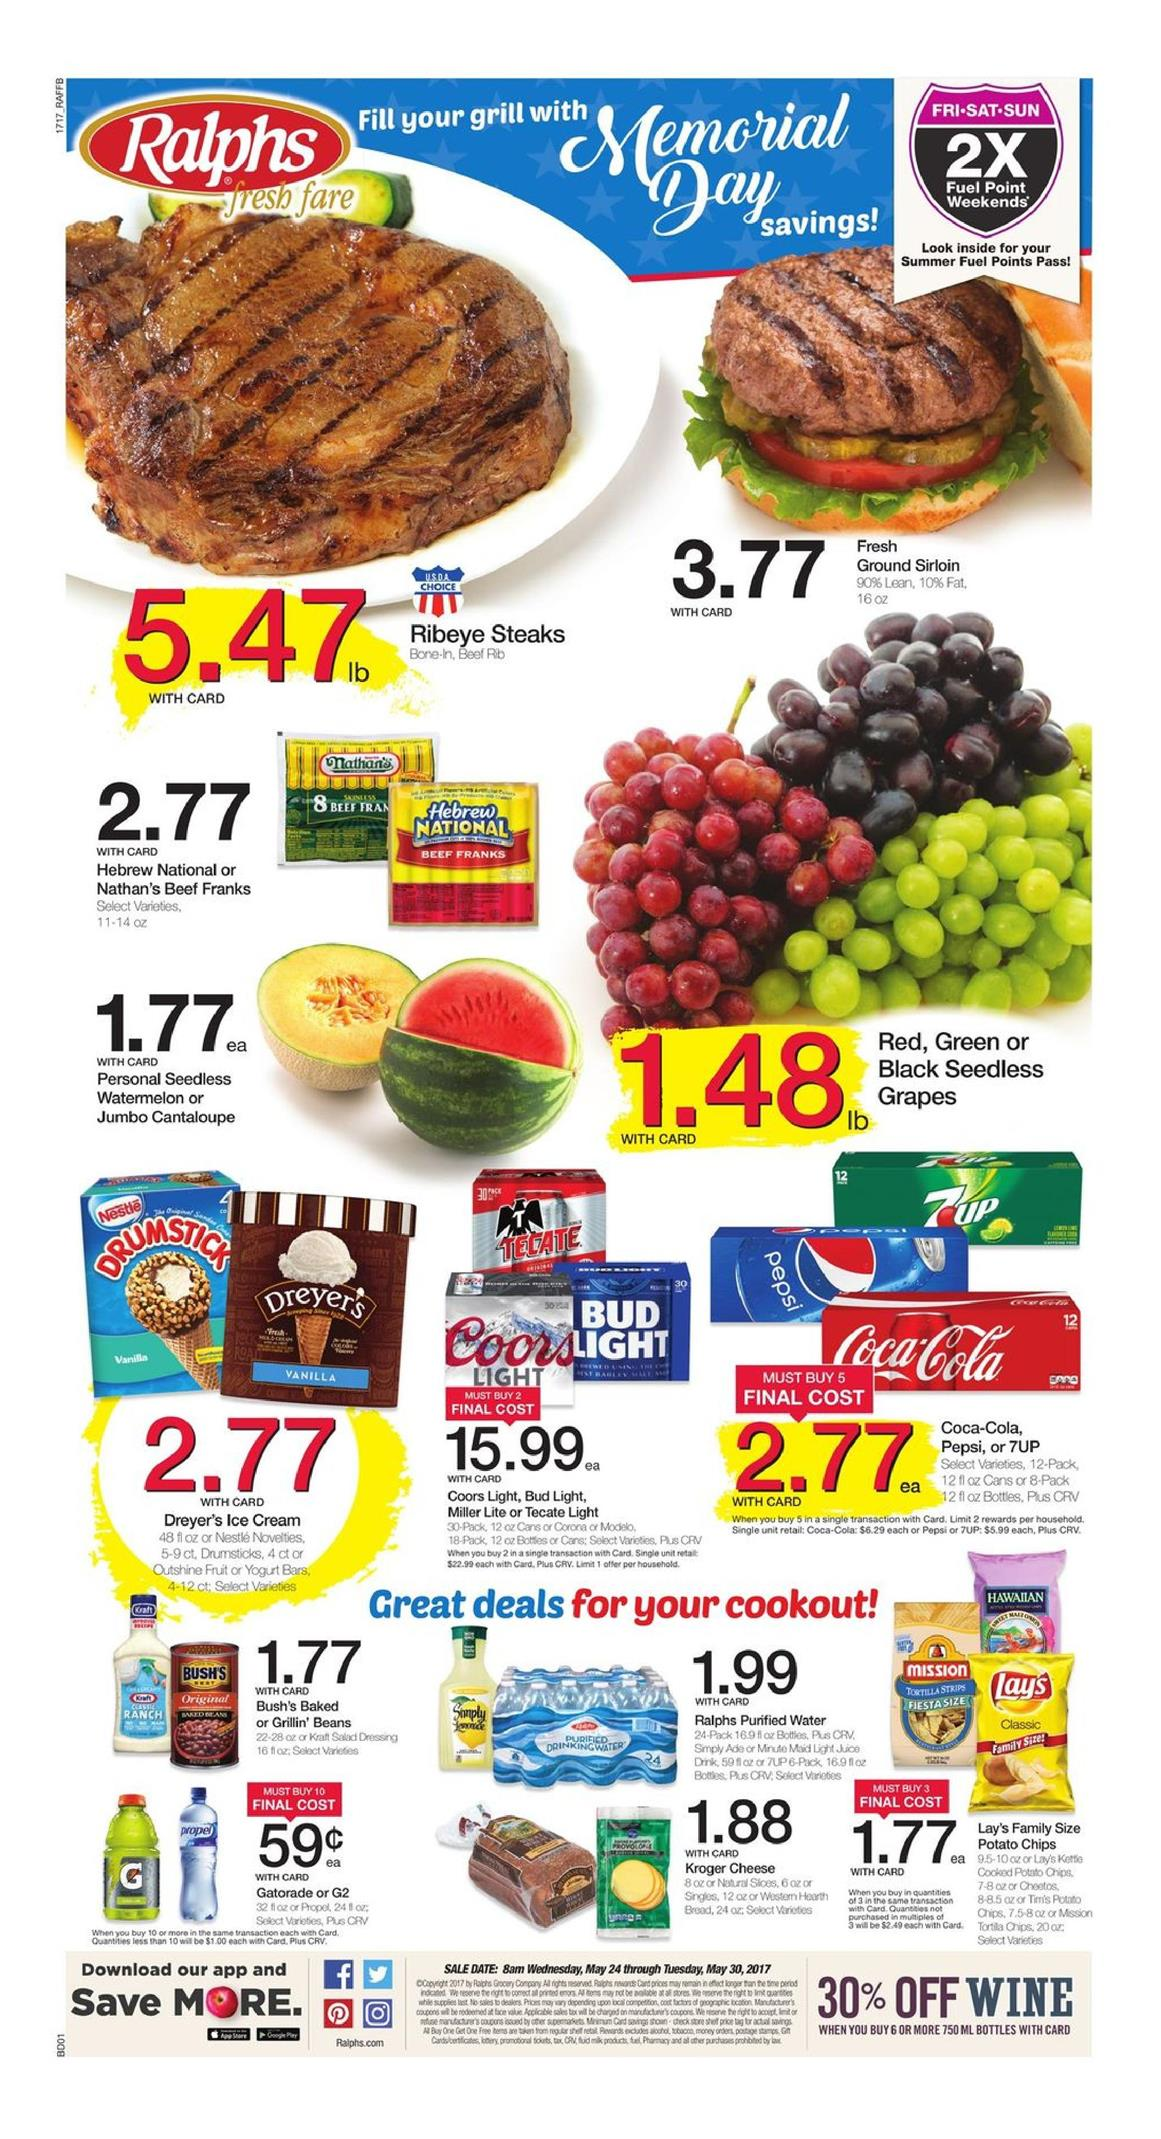 Ralphs weekly ad coupons